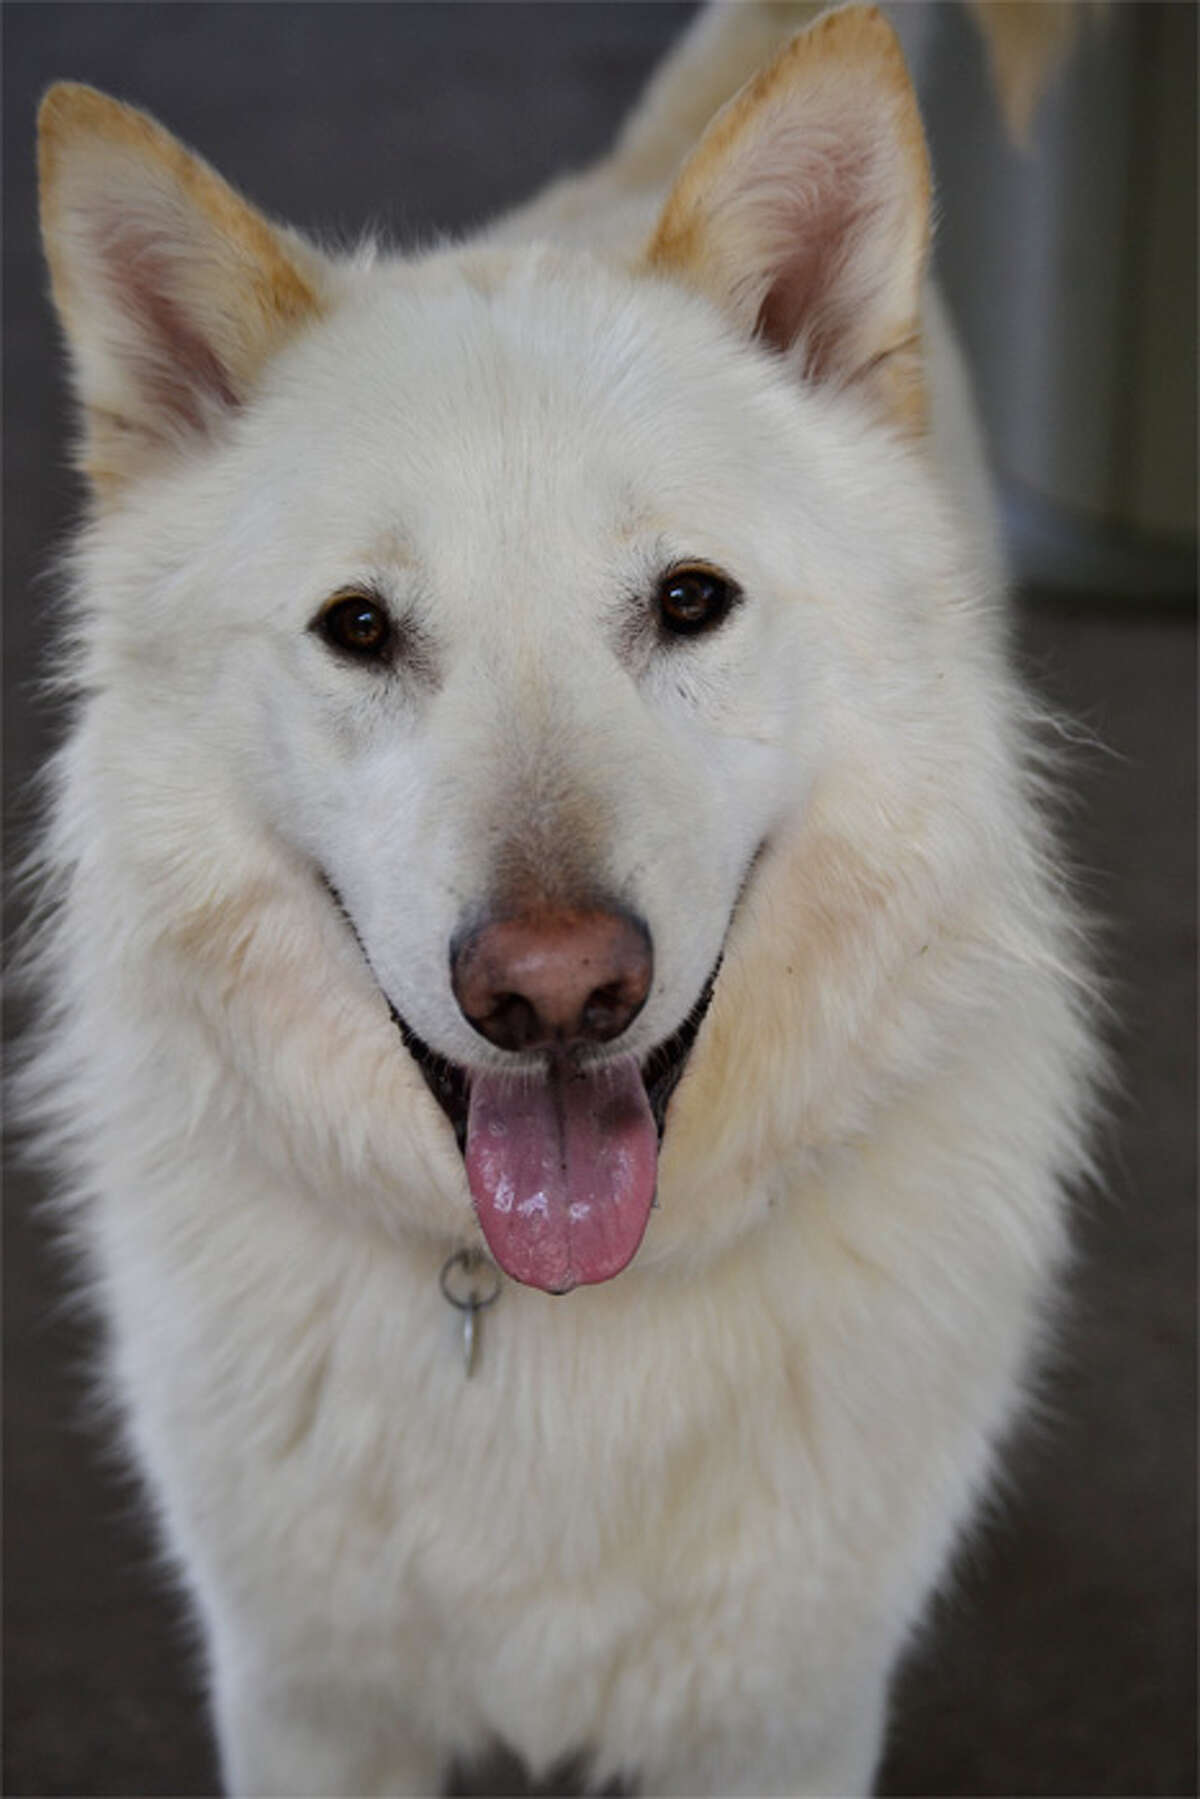 Name: Lenny, Breed: German Shepherd/Siberian Husky, Sex: Male, Age: 5 years old, Adoption Status: Available, Website: http://l.paws.org/ubth58 Photo: paws.org